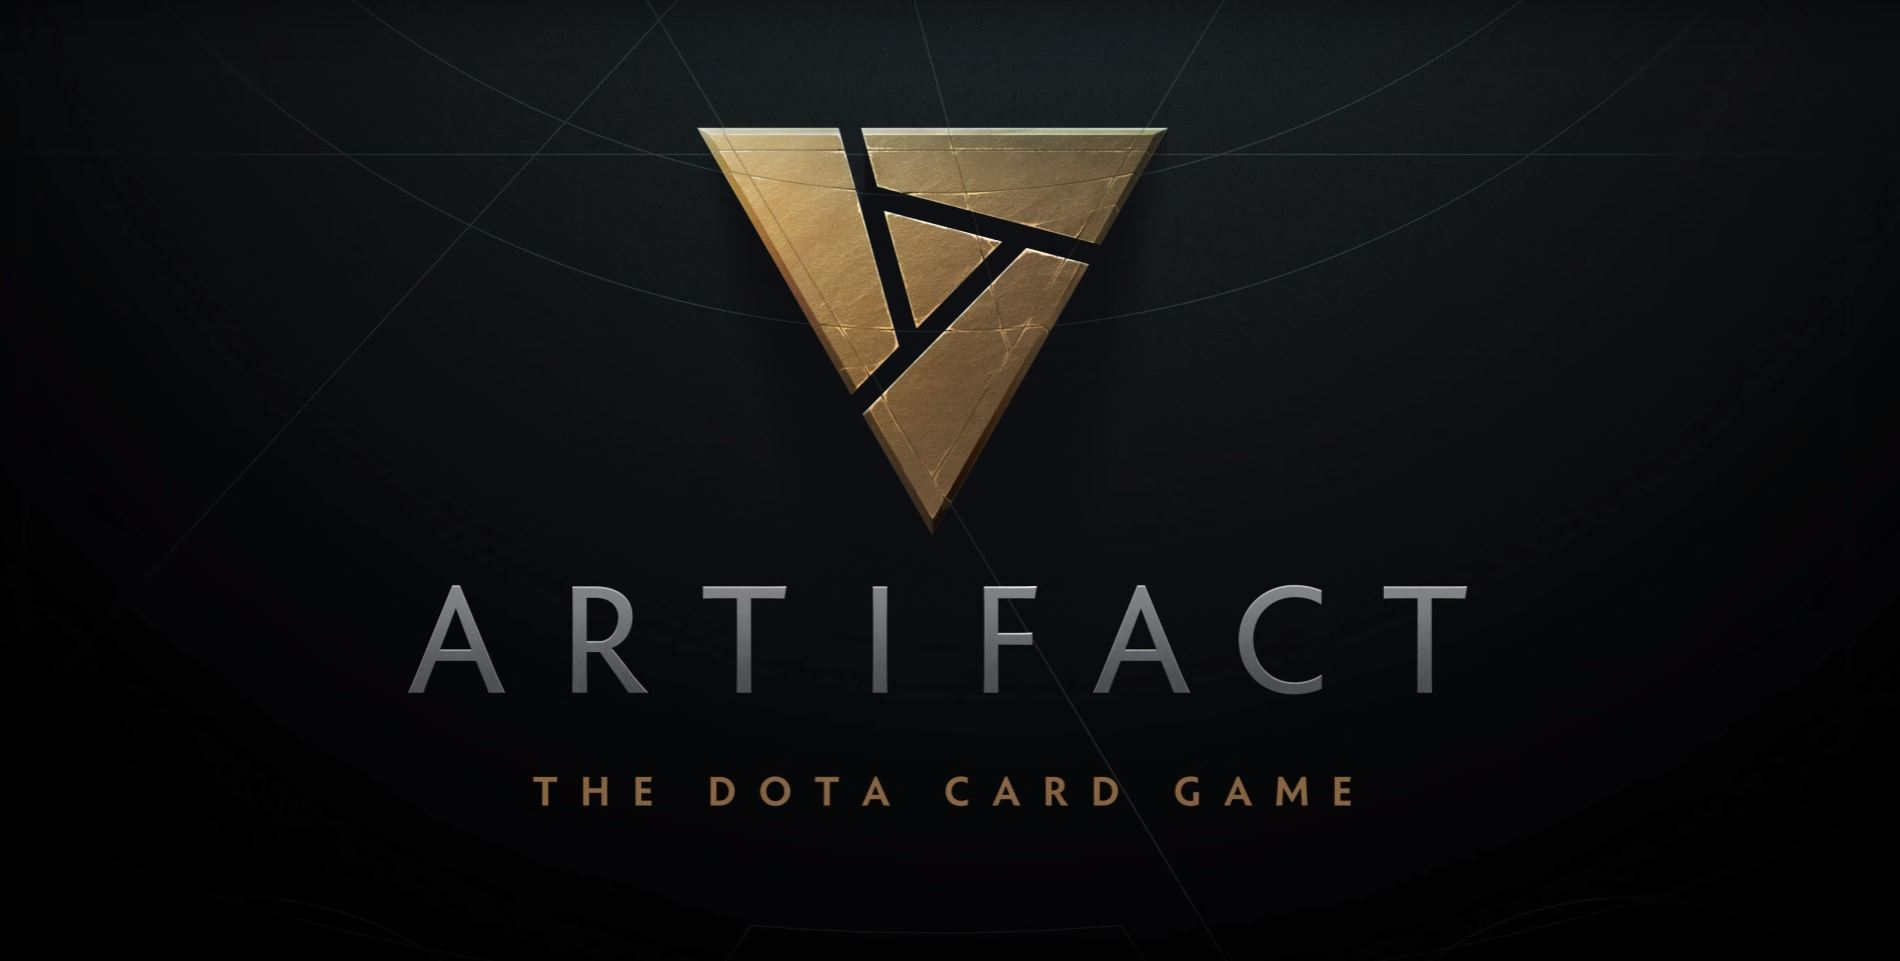 Photo of Valve's Dota Card Game Artifact Releases on November 20